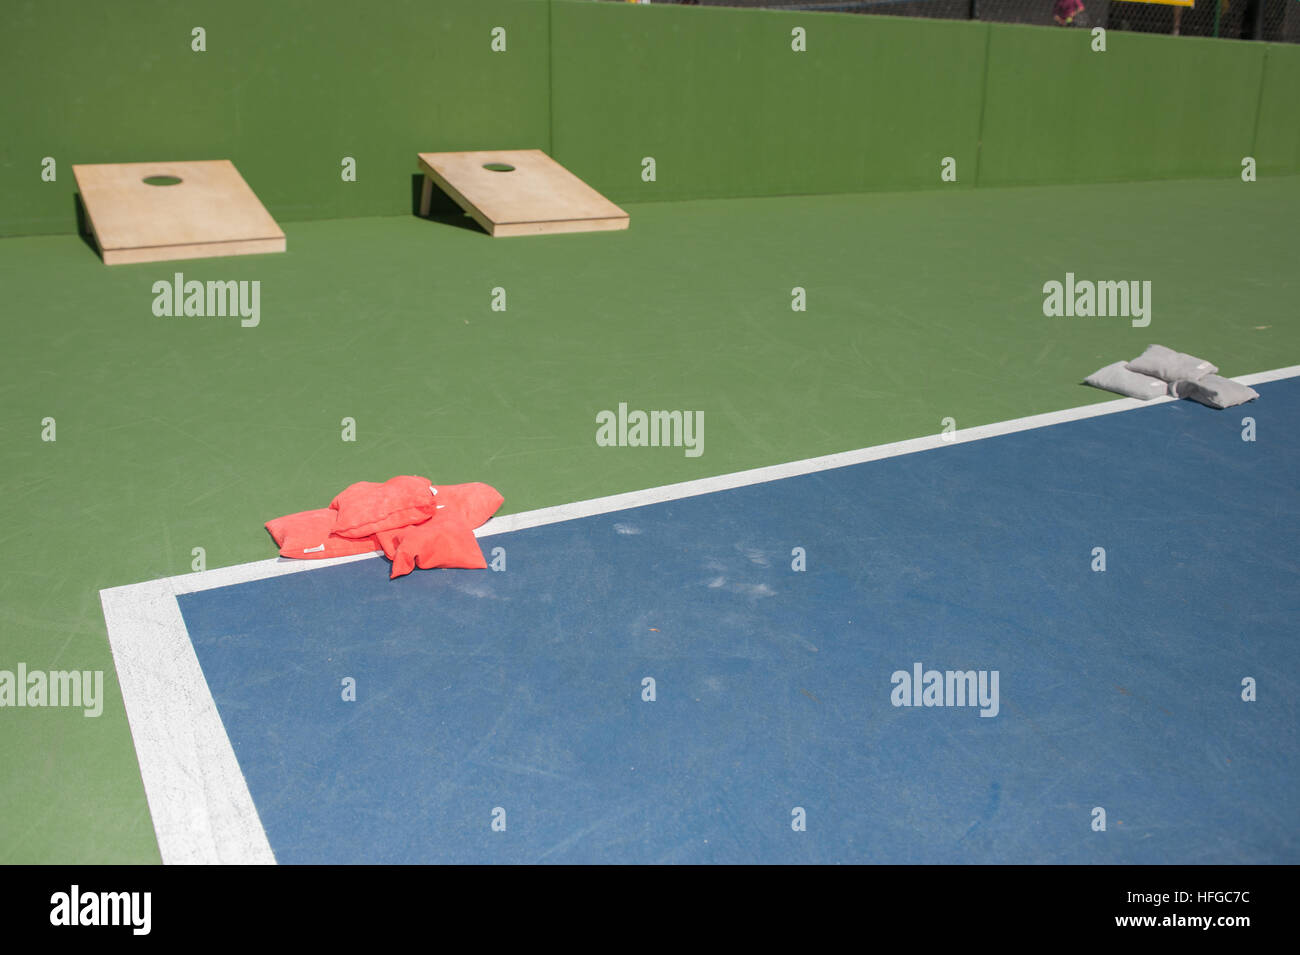 Corn hole game and bean bags ready to play - Stock Image